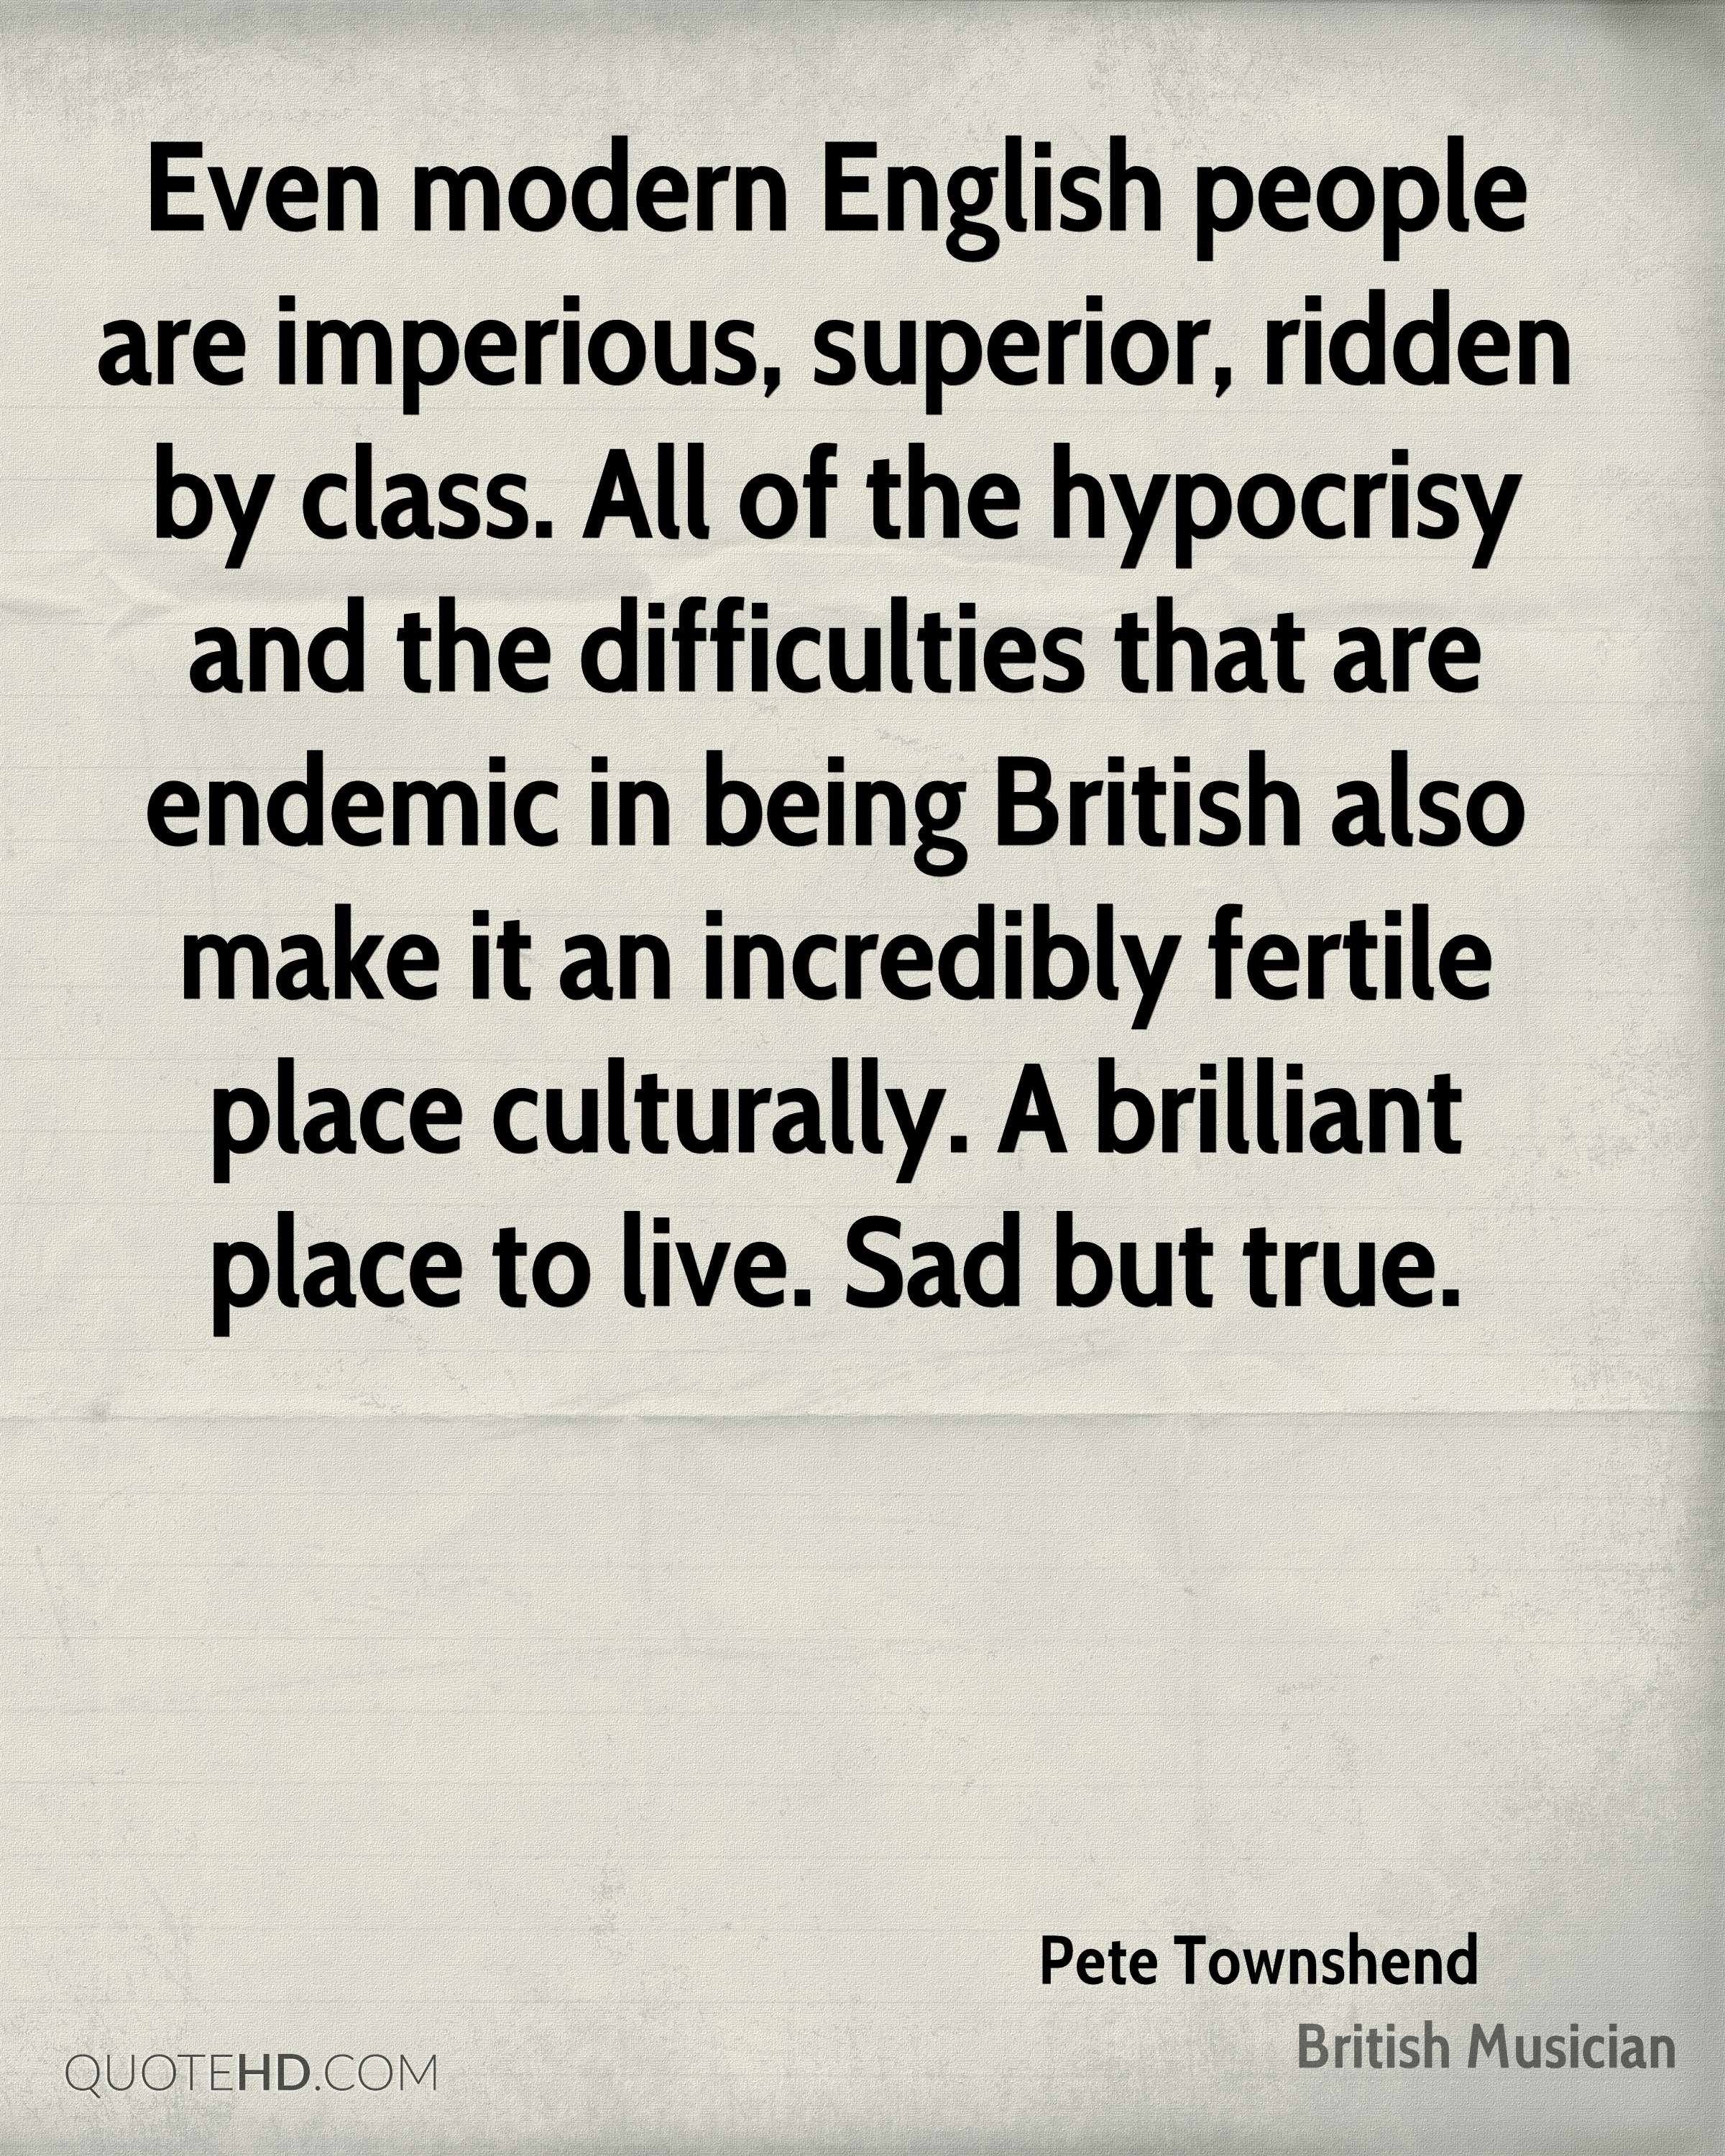 Even modern English people are imperious, superior, ridden by class. All of the hypocrisy and the difficulties that are endemic in being British also make it an incredibly fertile place culturally. A brilliant place to live. Sad but true.